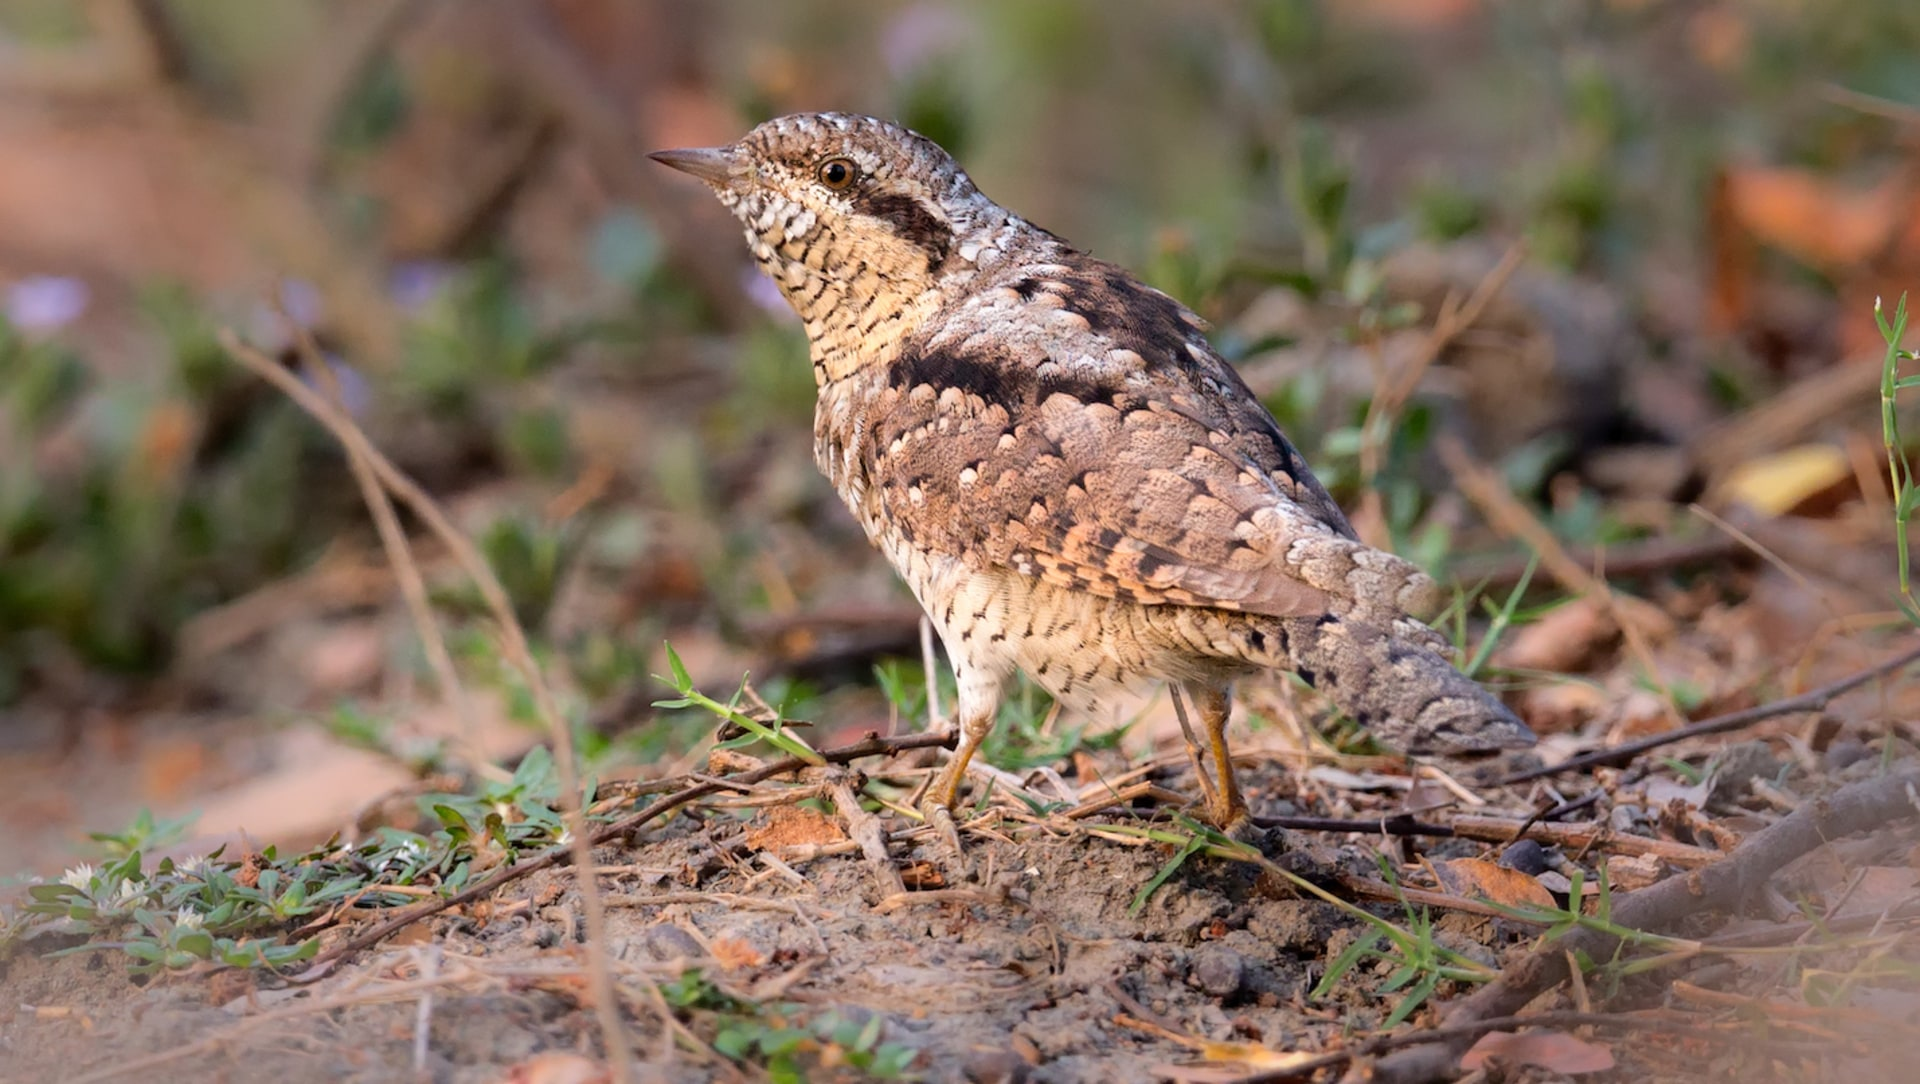 Nymphs, Love Spells, and the Eurasian Wryneck